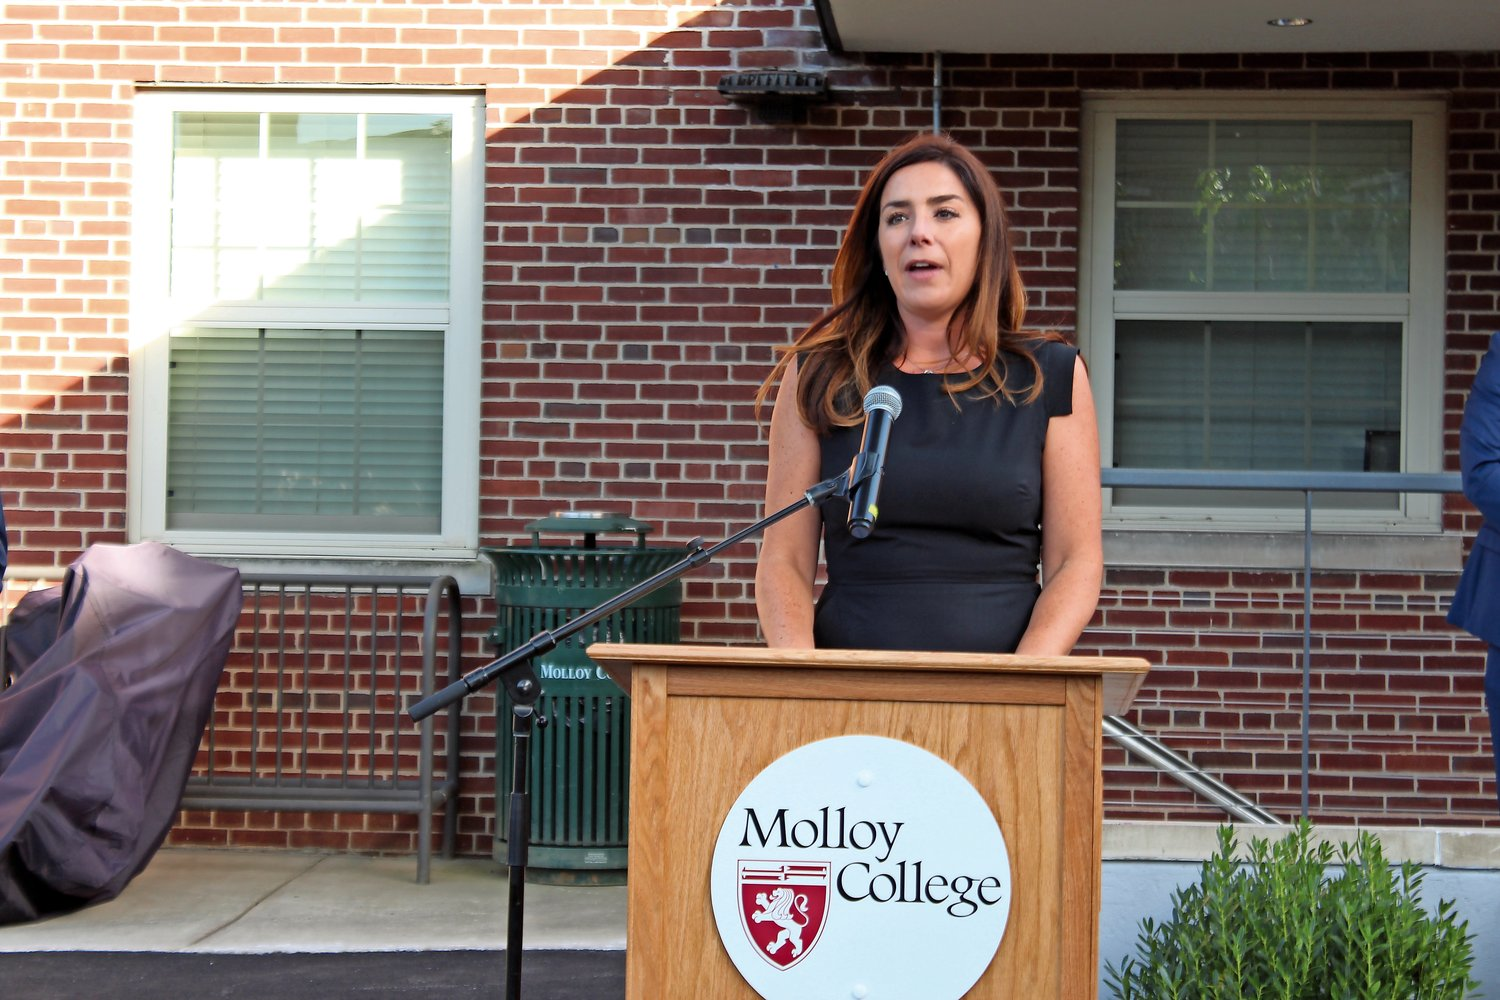 Gillian Corradino gave a moving tribute to her late father, Michael McGovern.